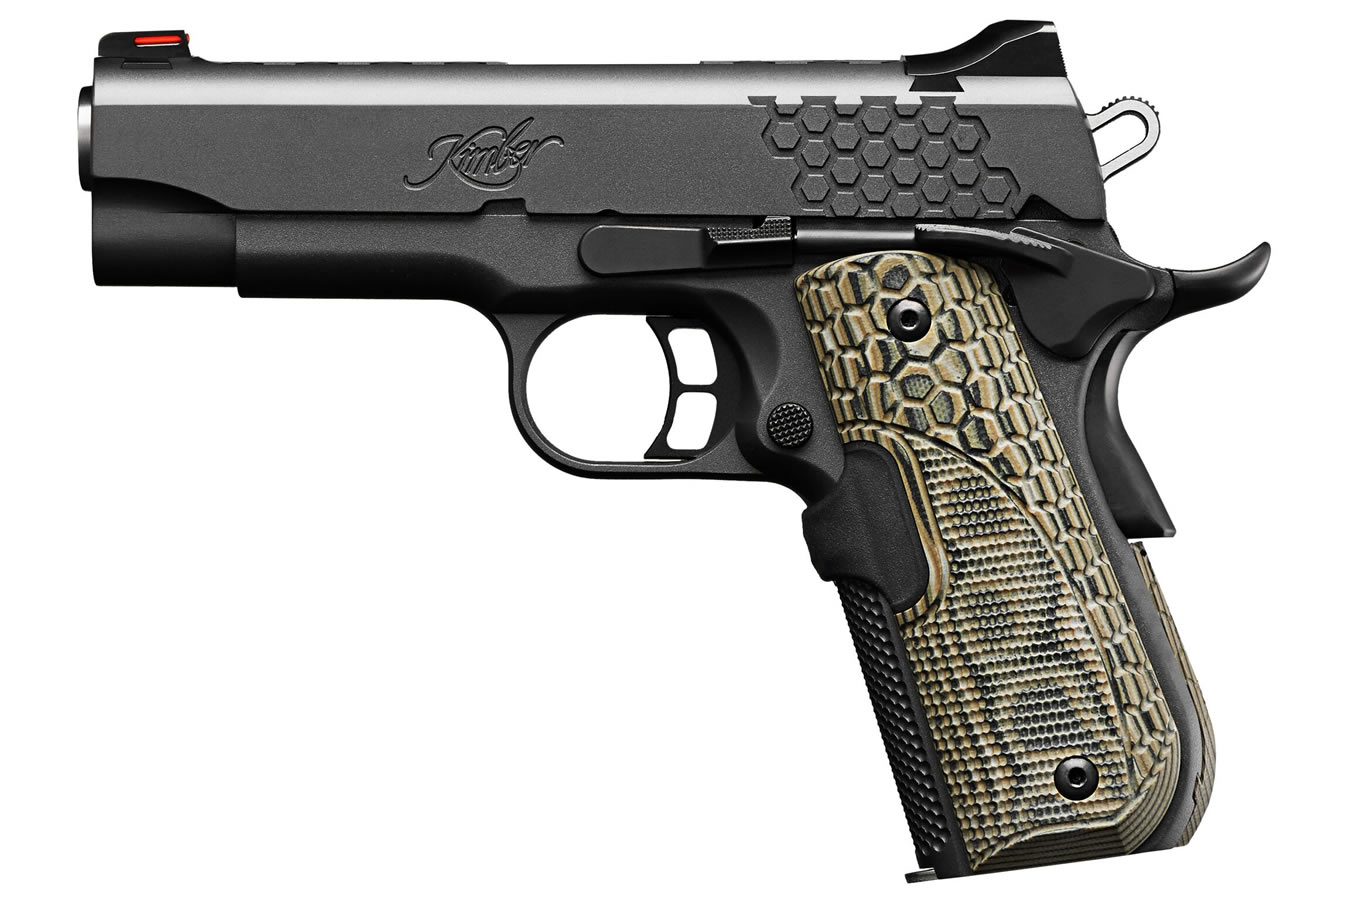 KIMBER KHX PRO 45 ACP WITH LASER ENHANCED GRIPS